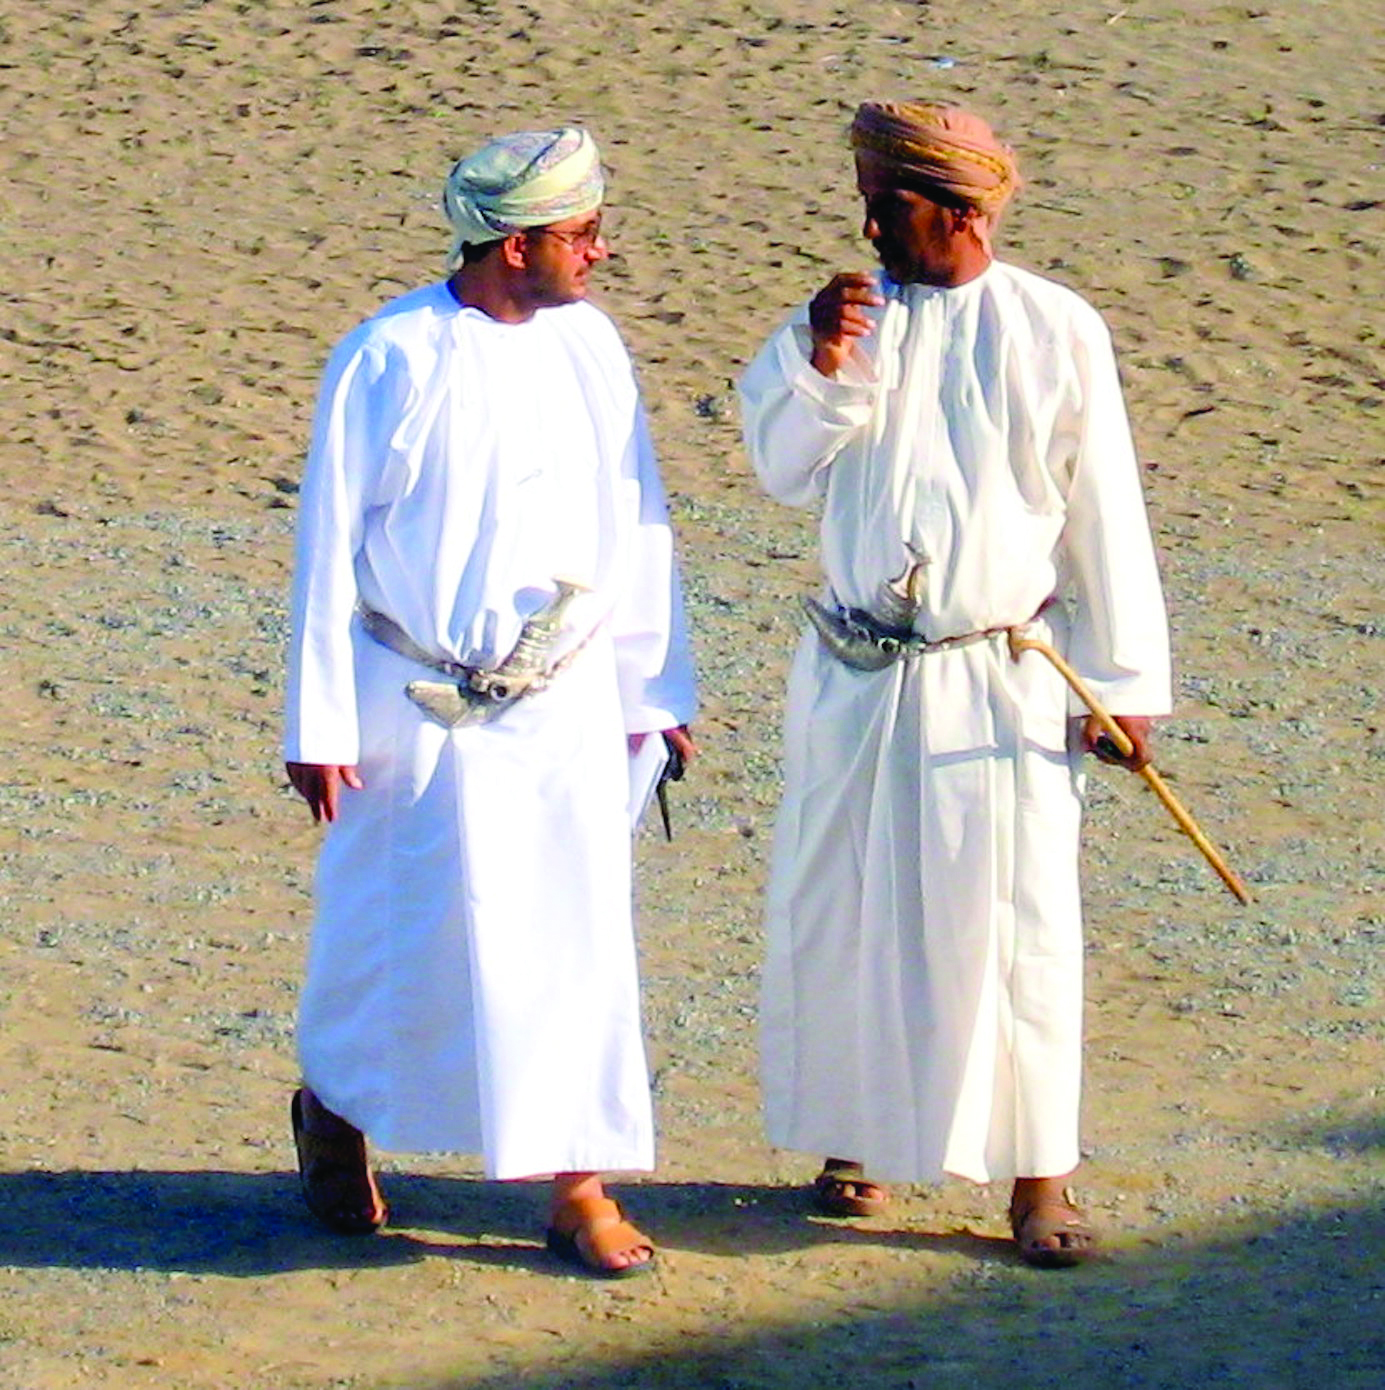 2b164dcb598 Omani men in Adam wearing national dress at a camel race